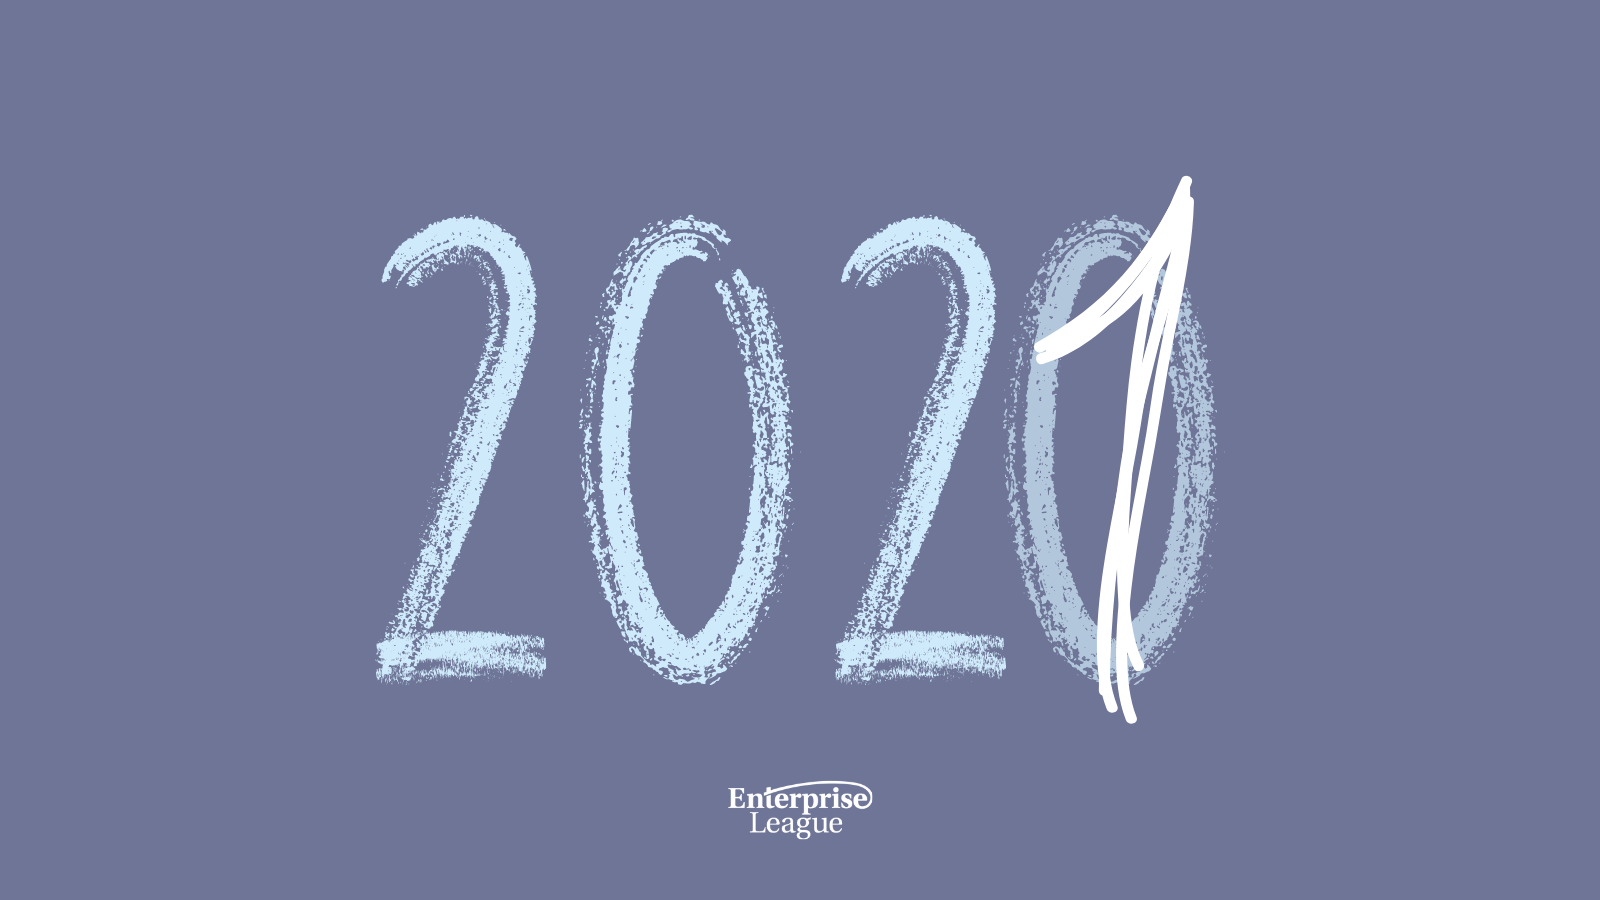 2020 in review: A letter from our CEO and Co-Founder